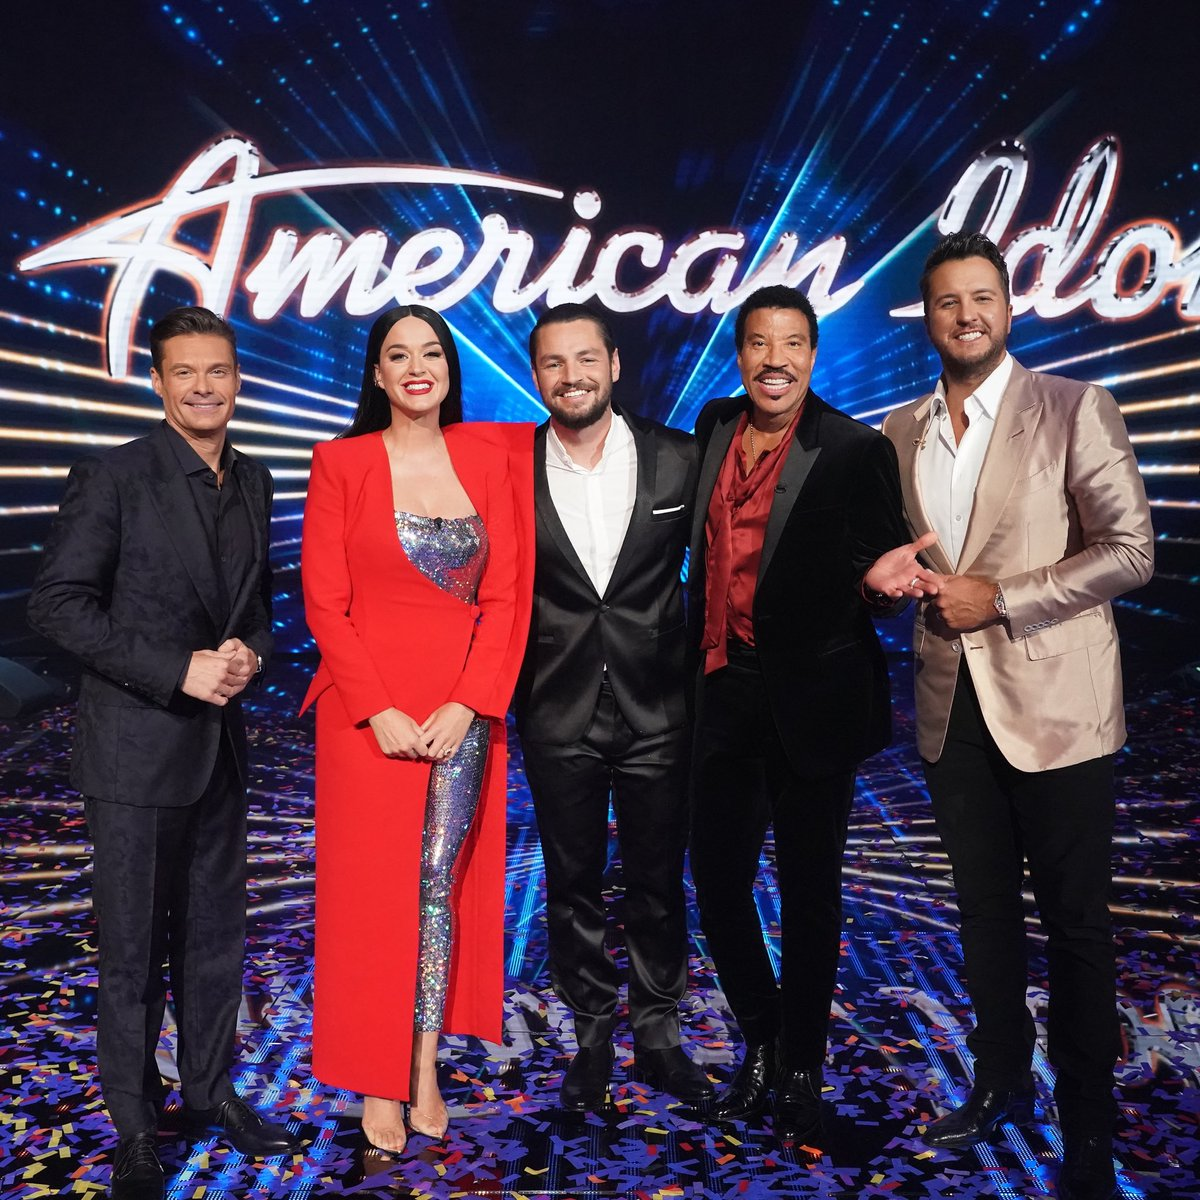 Here's to a season unlike any other! This past year showed us that life is too short to not follow your dreams. Congrats to our new #AmericanIdol champ @ChayceBeckham and to everyone who came out and auditioned - the talent this season was unmatched. Until next time! #IdolFinale https://t.co/S3yjV1lfGT